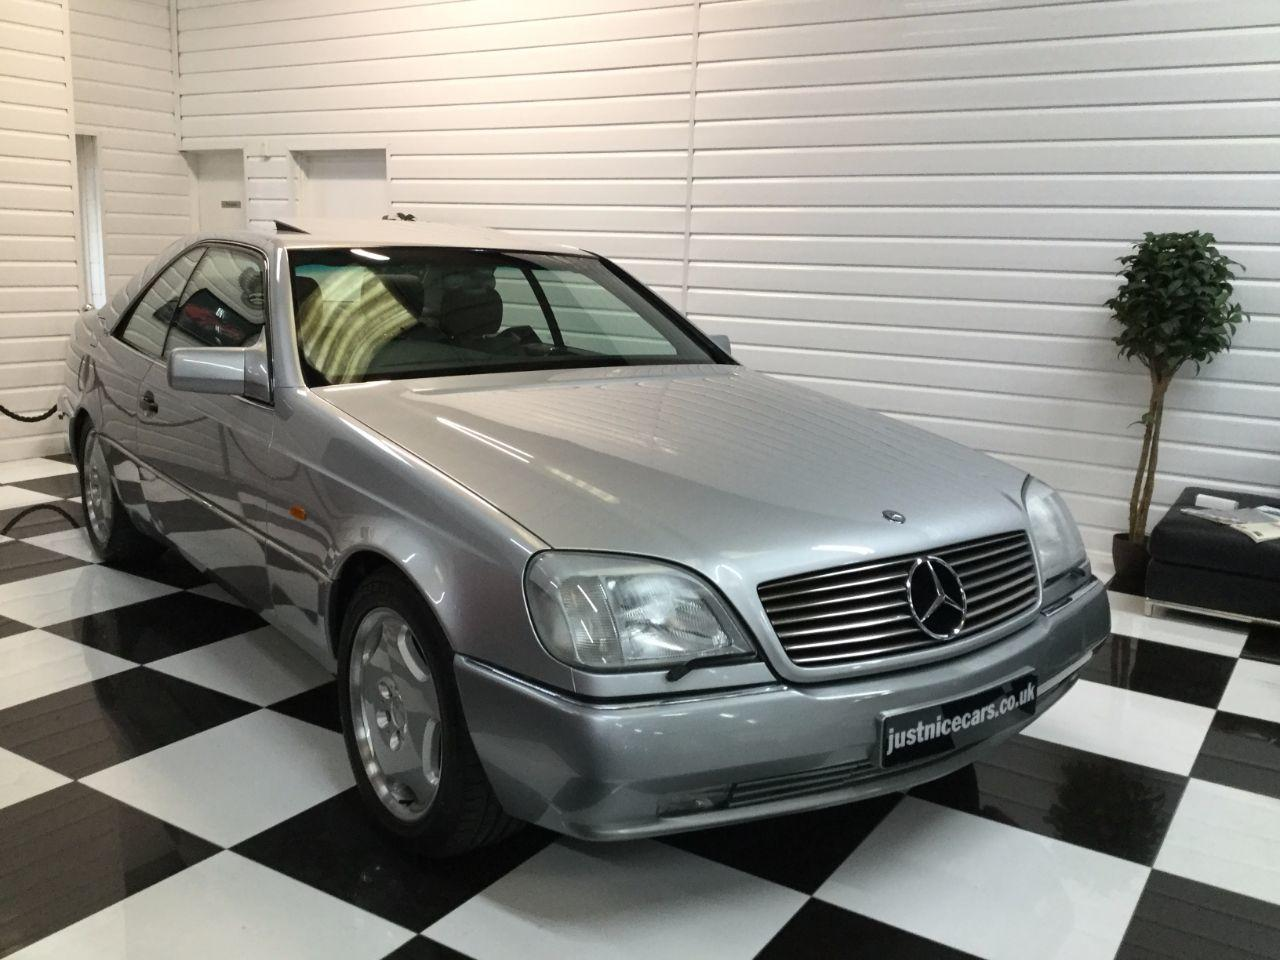 Mercedes-Benz S Class 6.0 S600 V12 COUPE Coupe Petrol Brilliant Silver